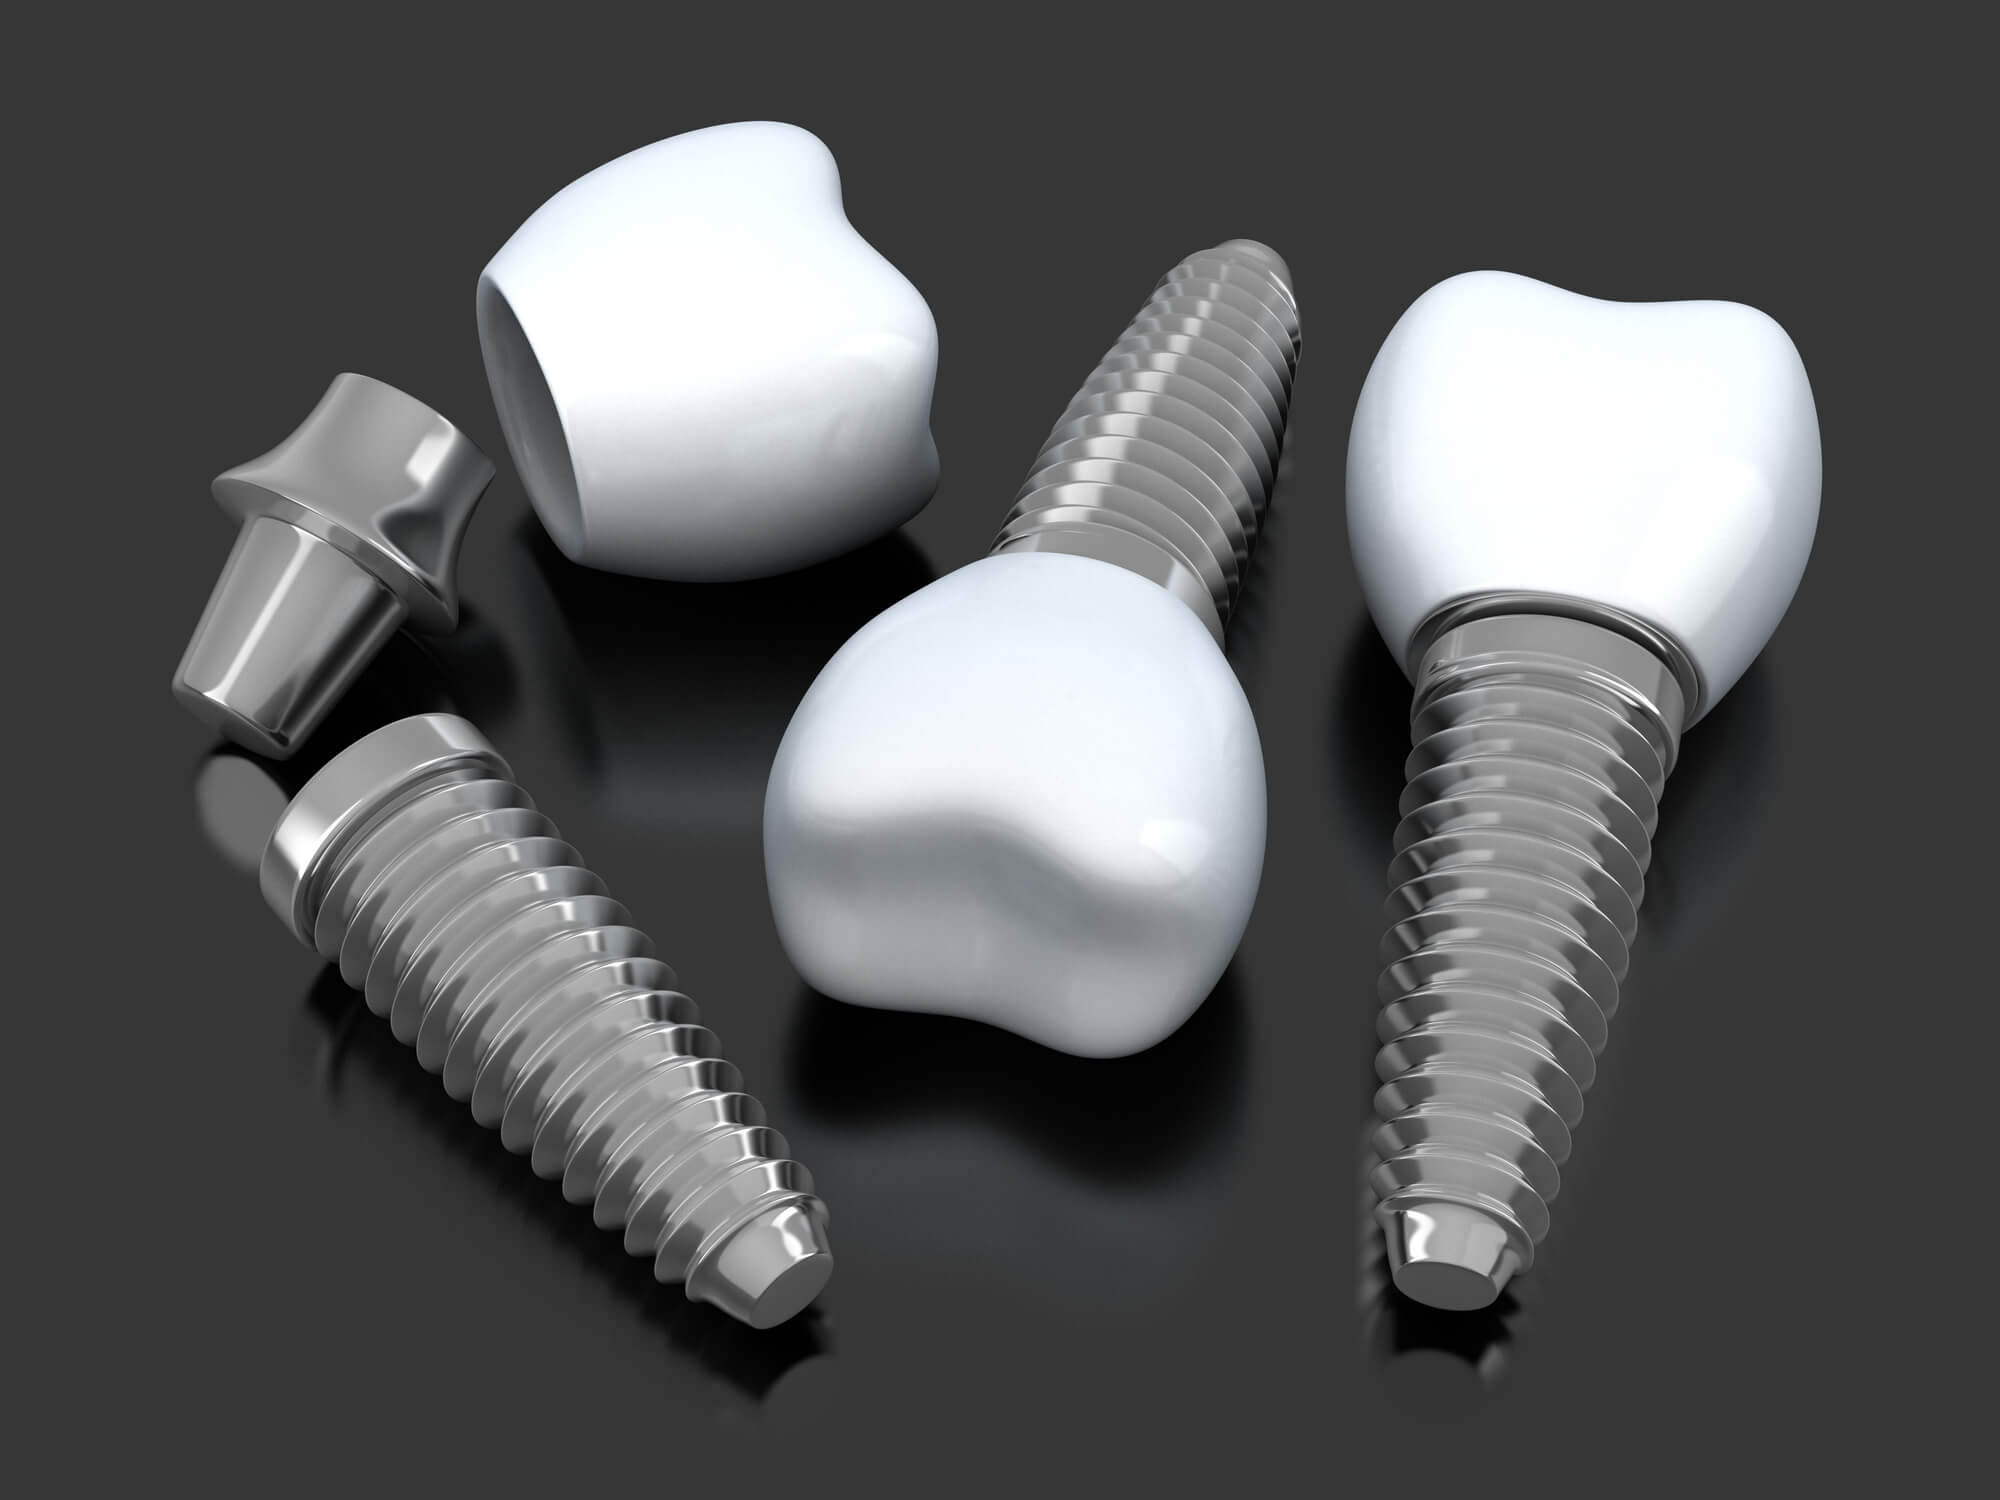 Where can I get Dental Implants Aventura?